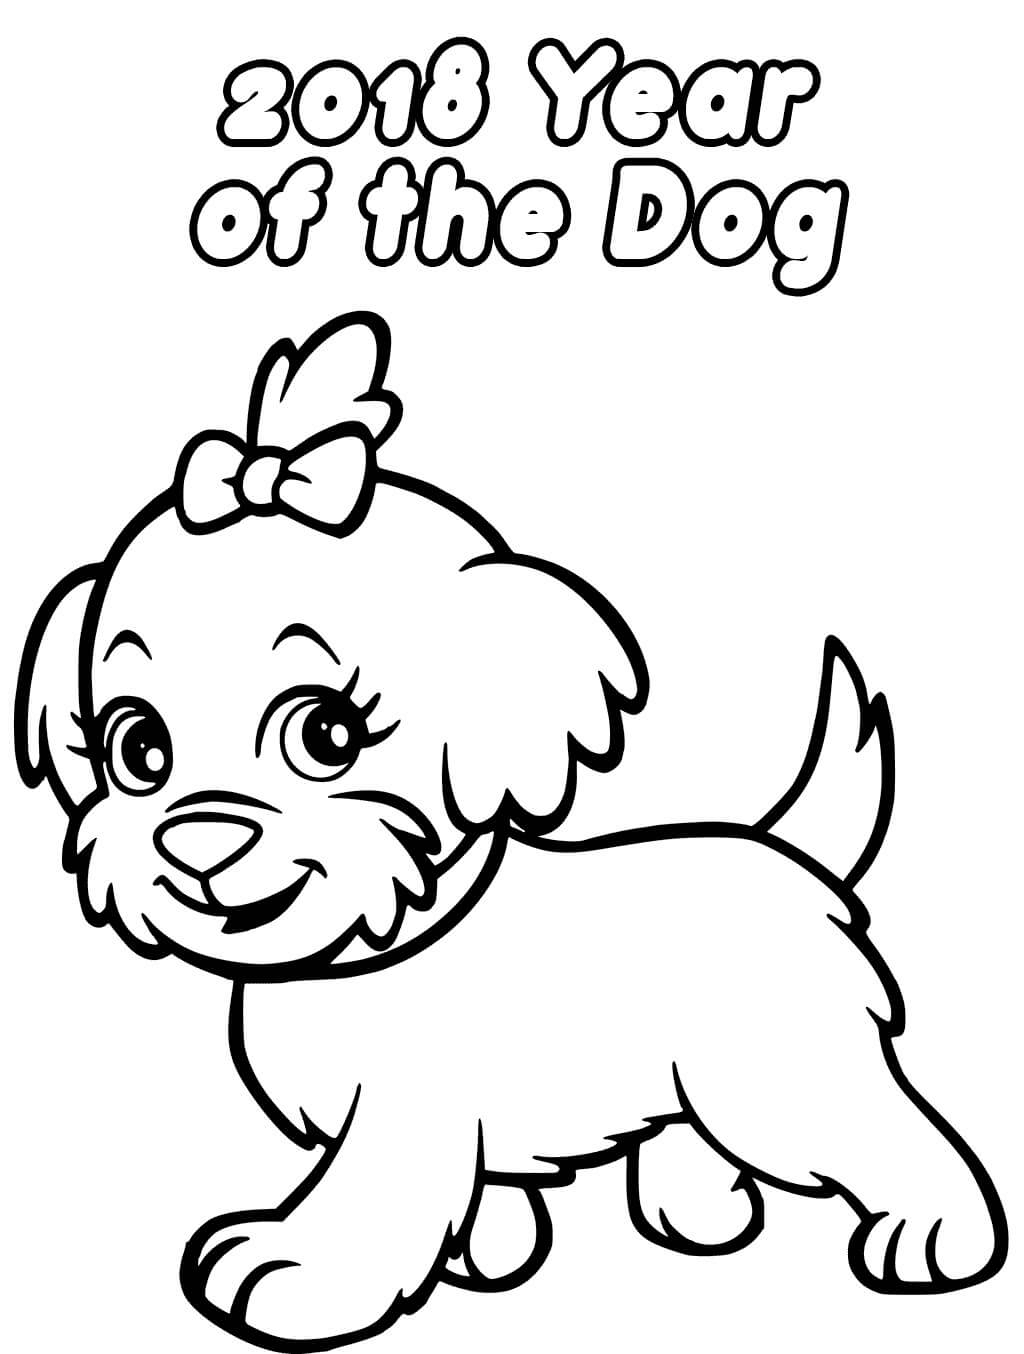 Chinese Year of the Dog 2018 Coloring Page